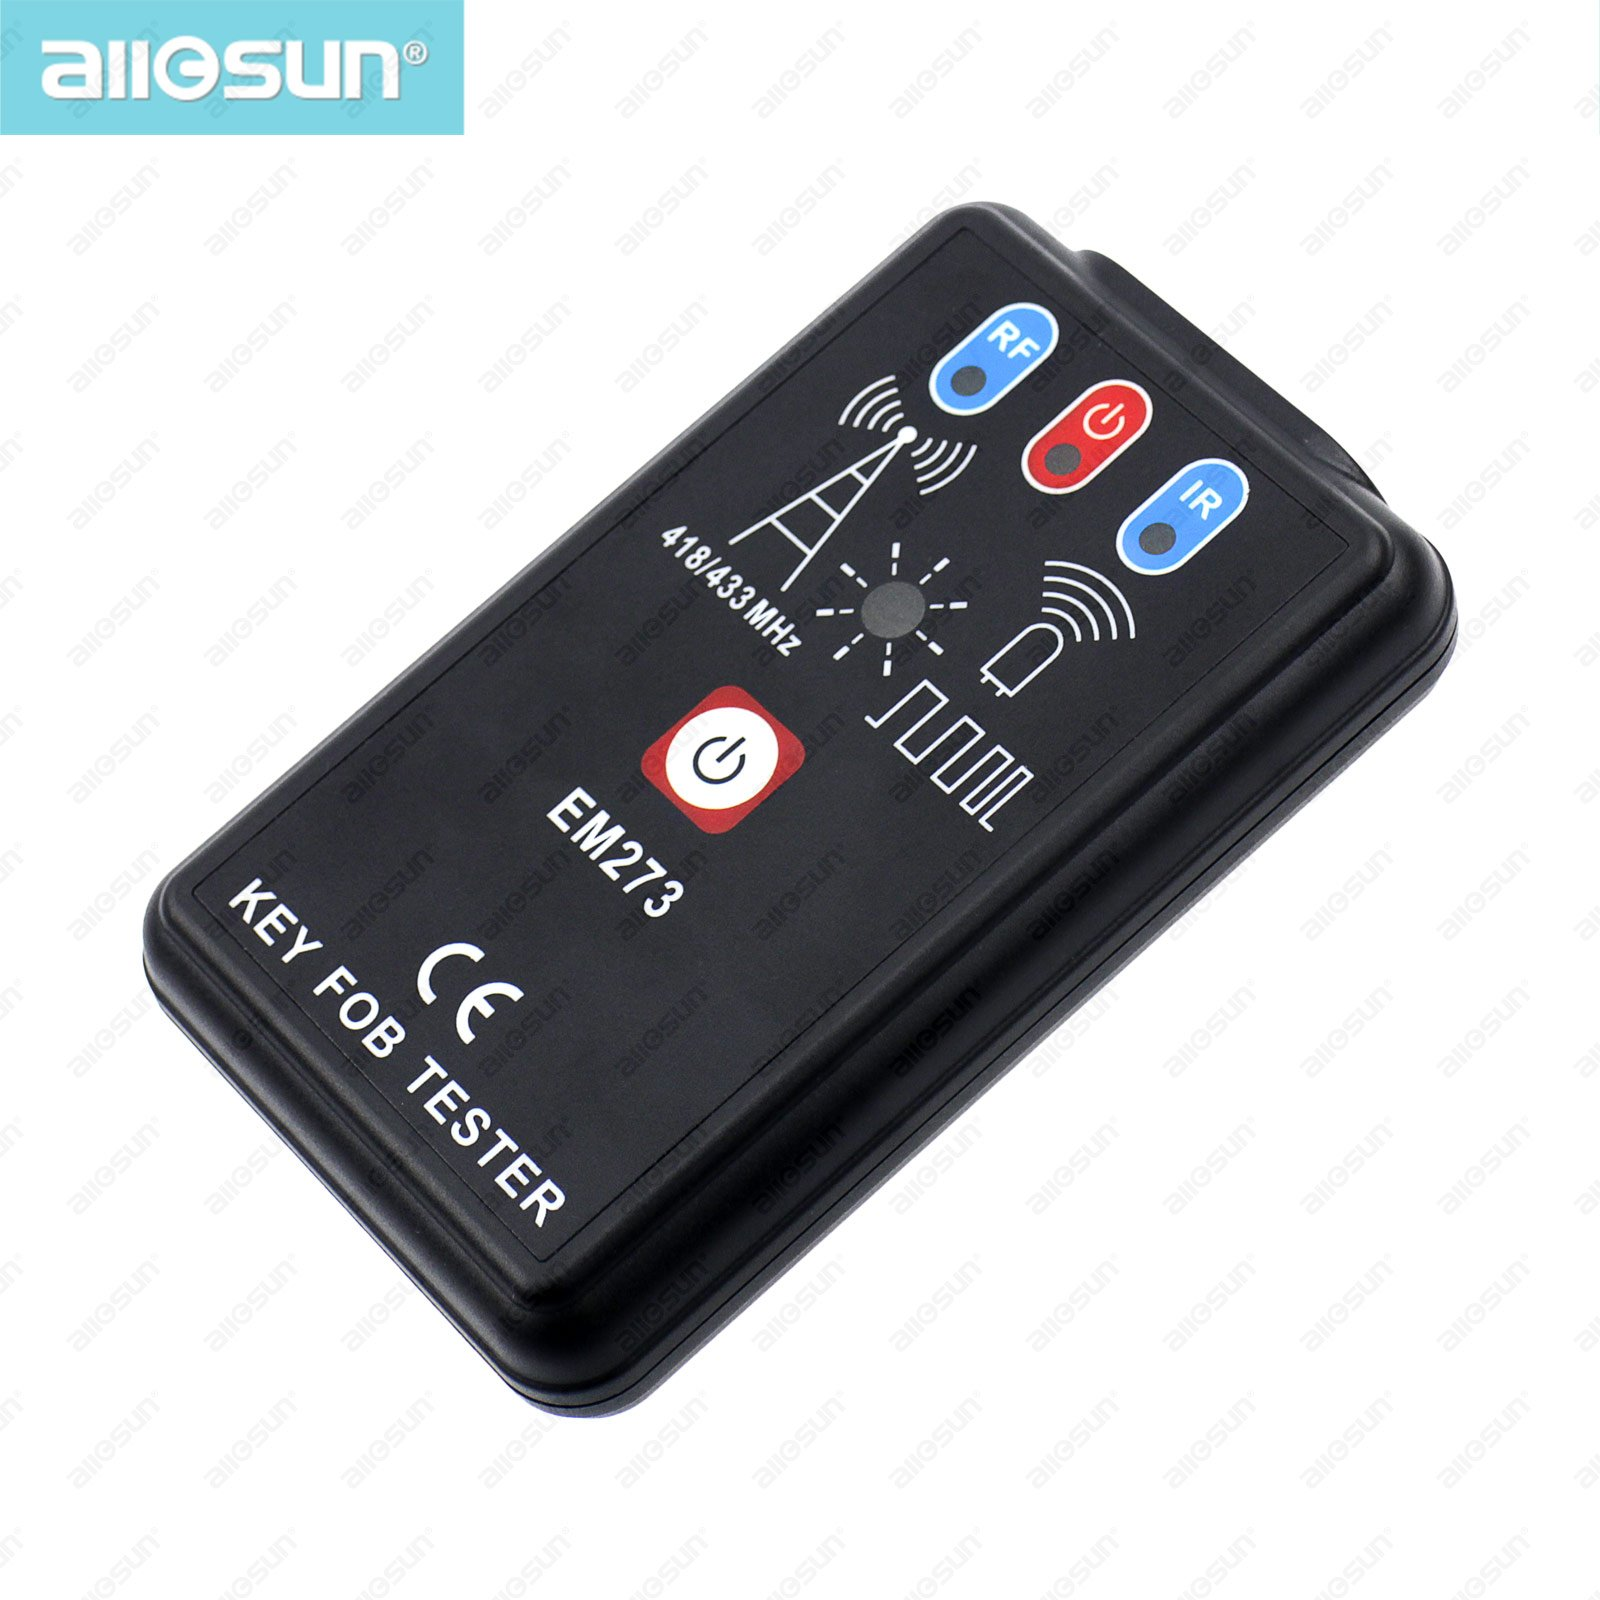 LED Key Fob Frequency Tester Checker Finder Wireless Radio Frequency Remote Control EM273 all-sun(China (Mainland))